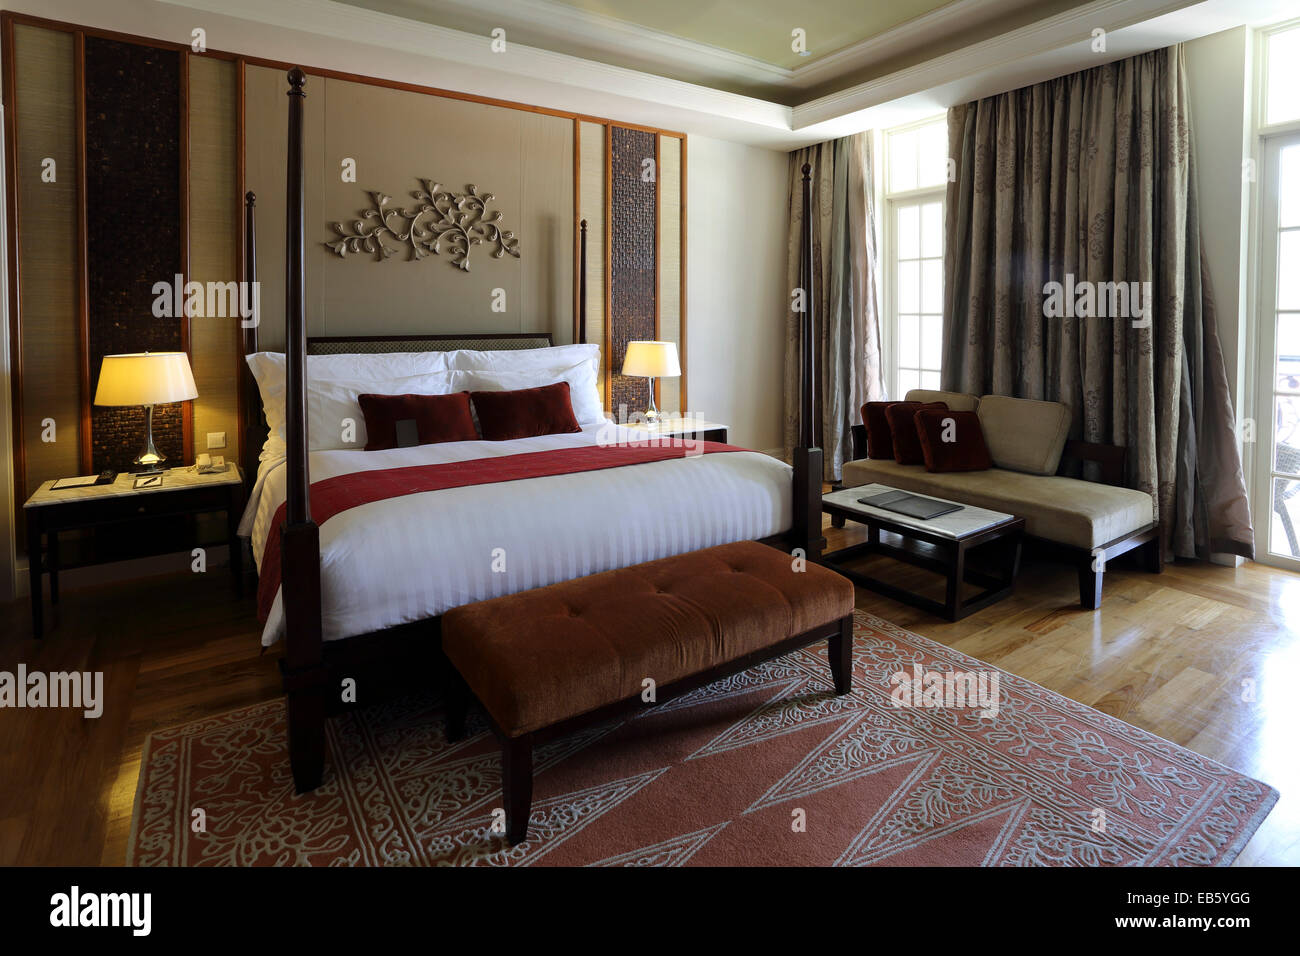 4 poster bedroom designs - A Bedroom With A 4 Poster Bed At The Danna Hotel On Langkawi Malaysia